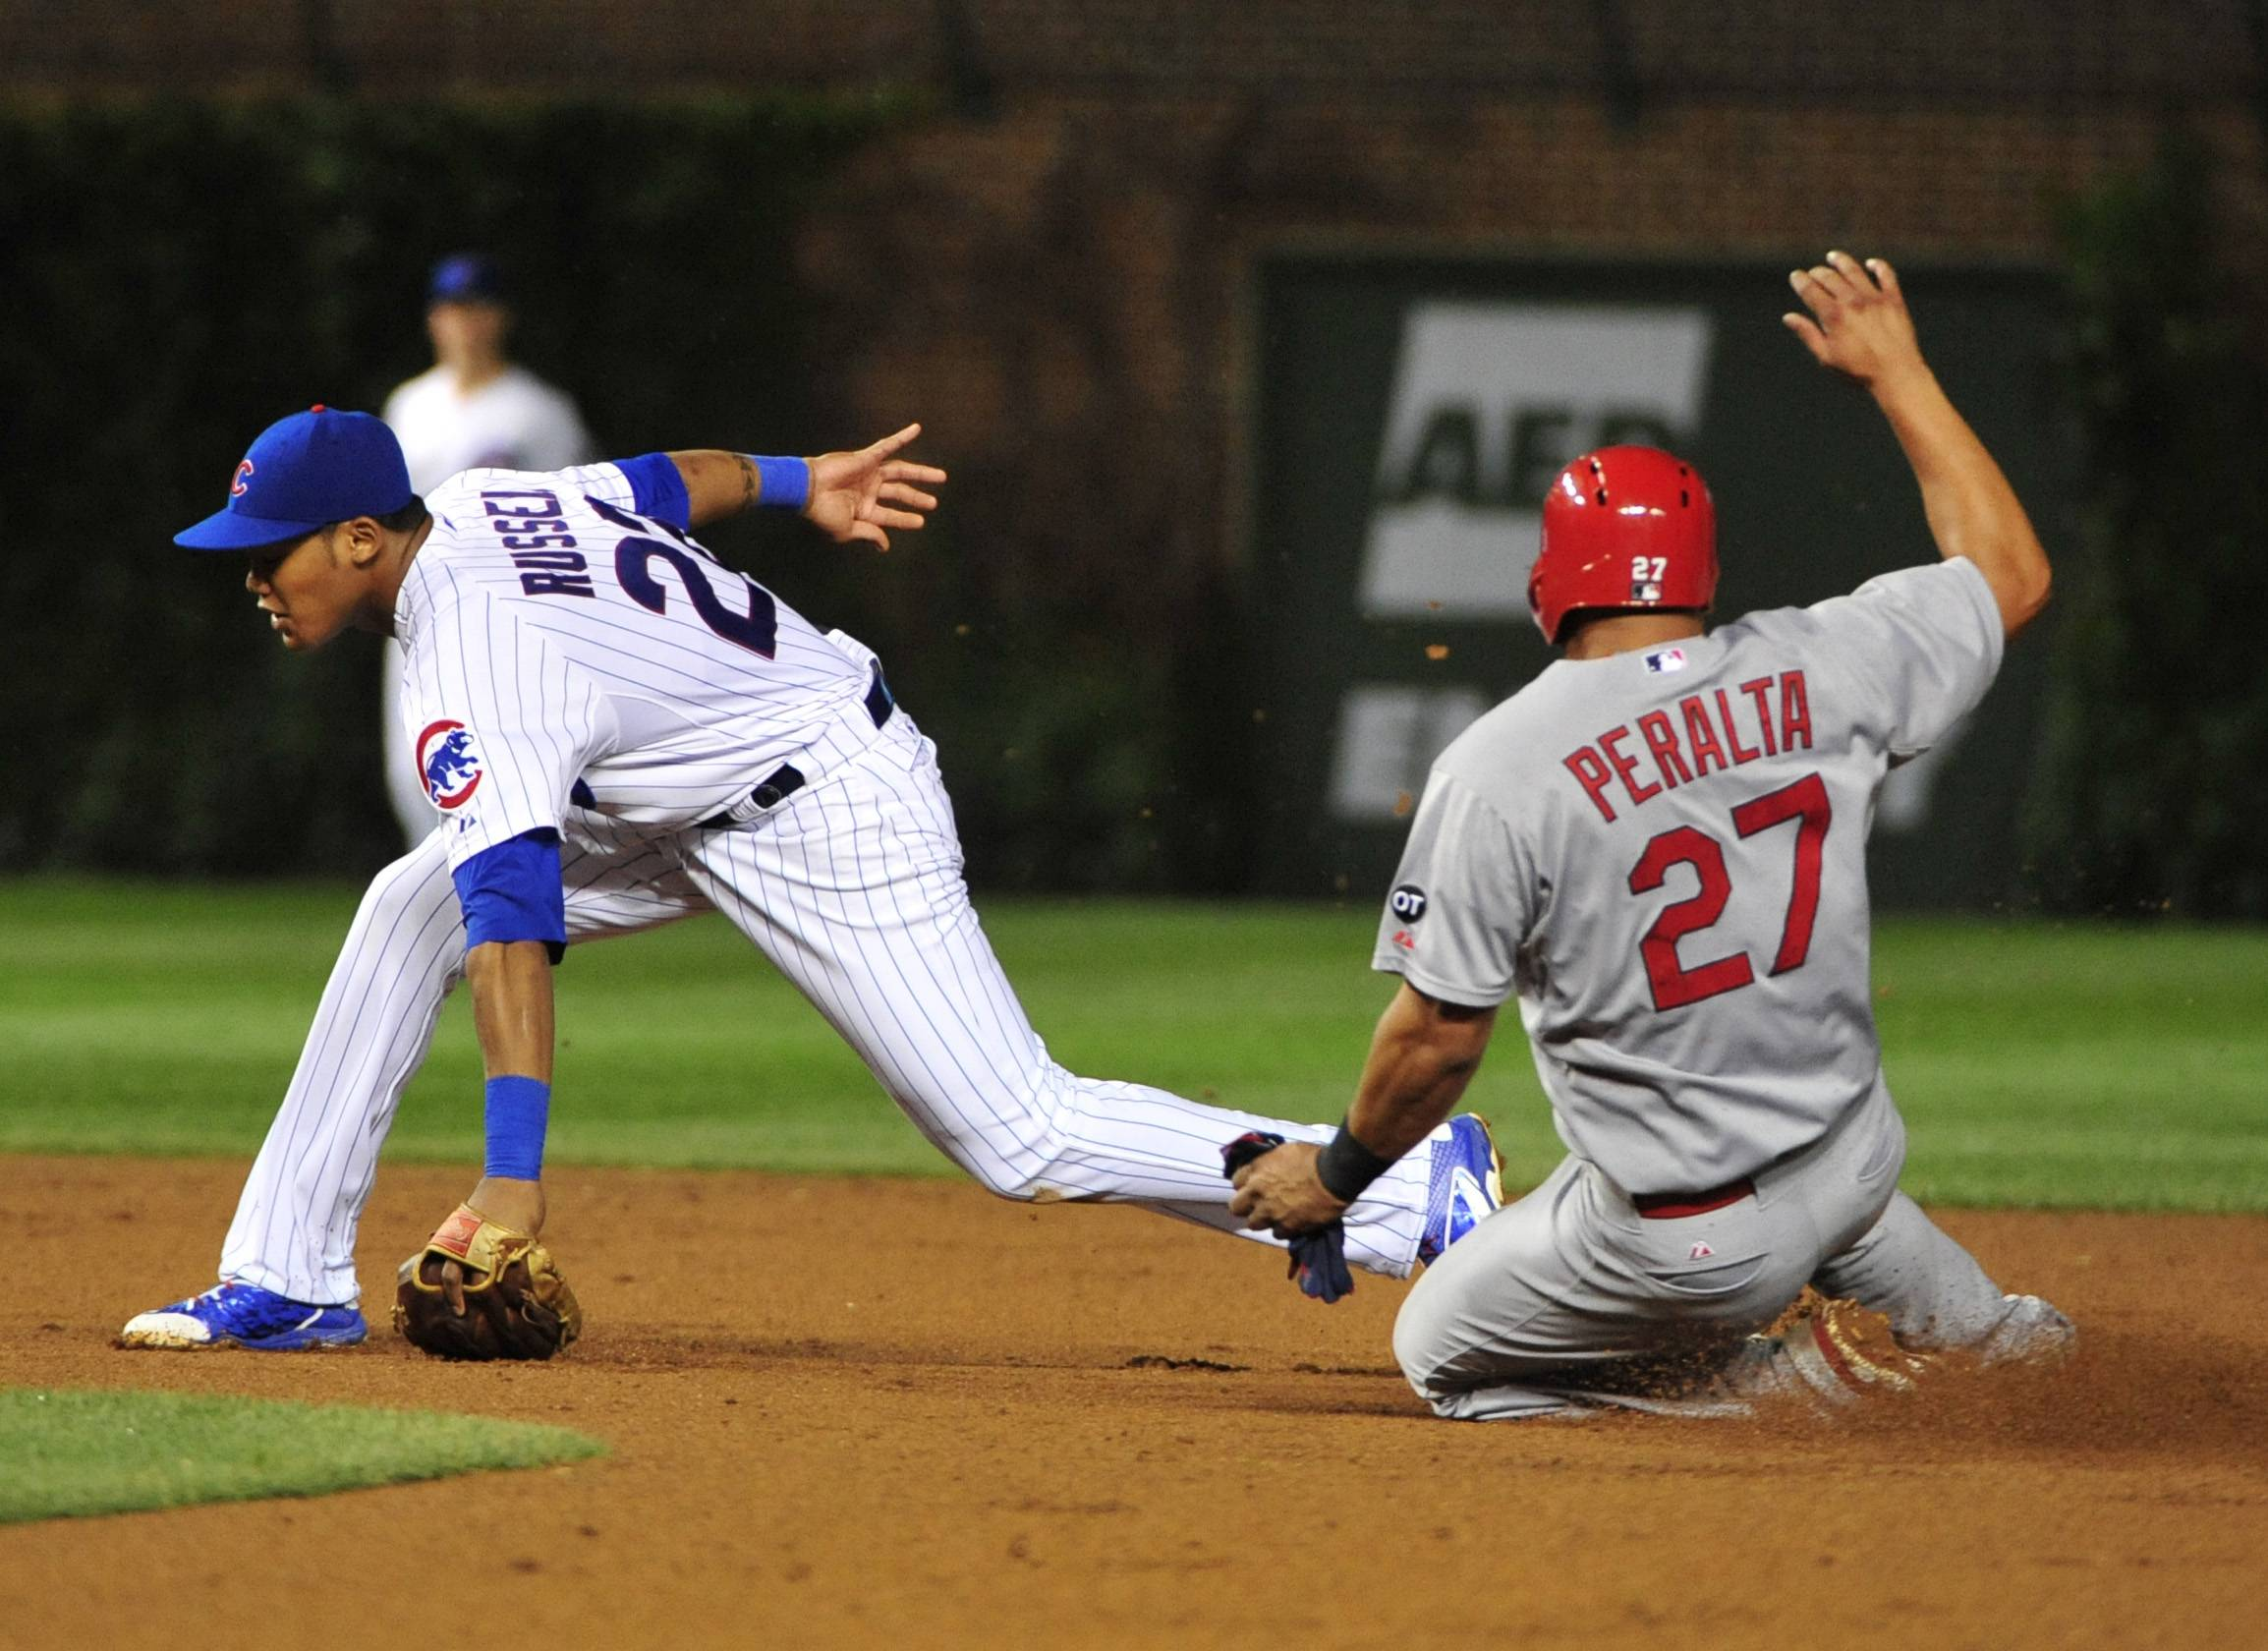 St. Louis Cardinals pounce on Chicago Cubs miscue